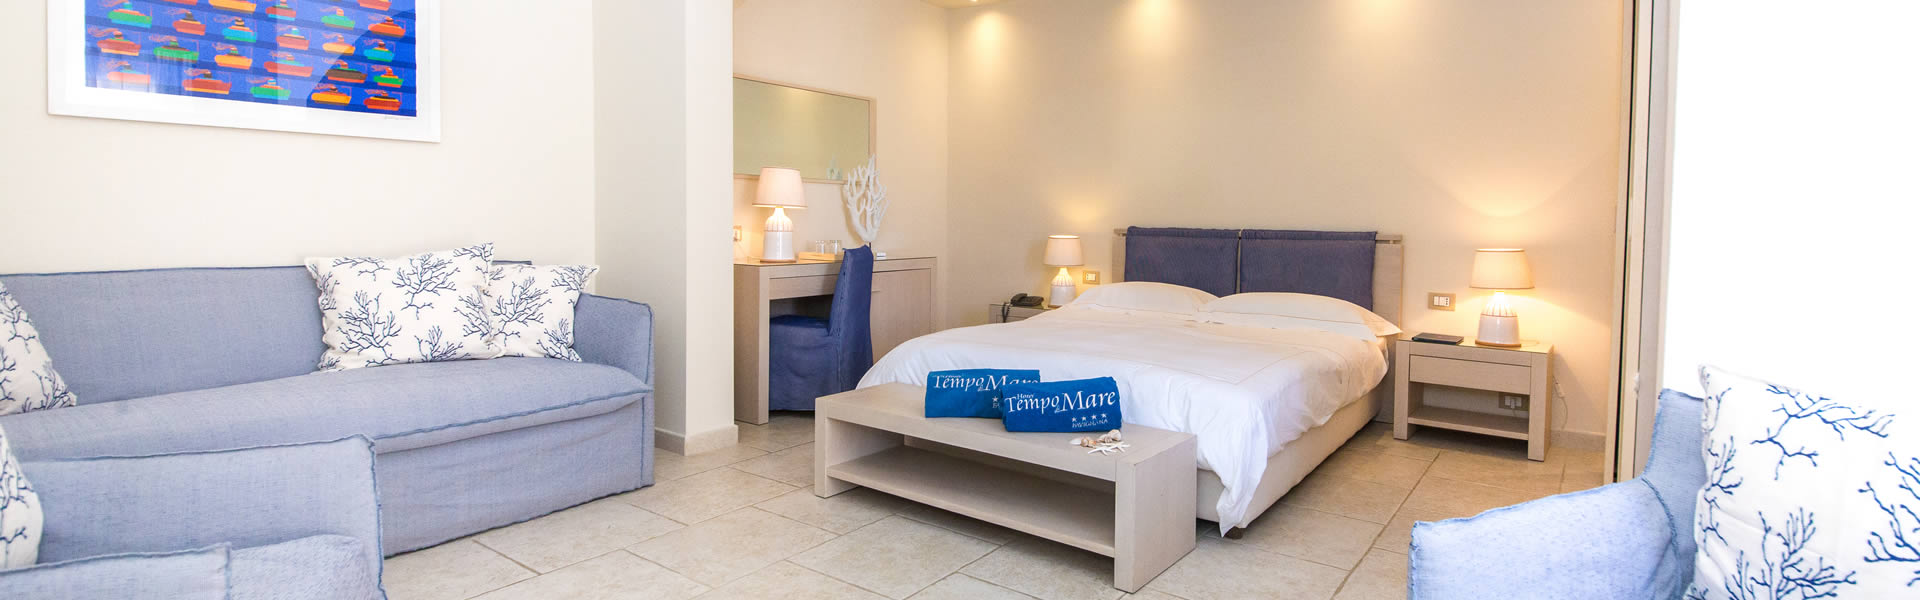 The Plus suites, more spacious than the Family suites, are the ideal place to spend a family holiday in a magical island.